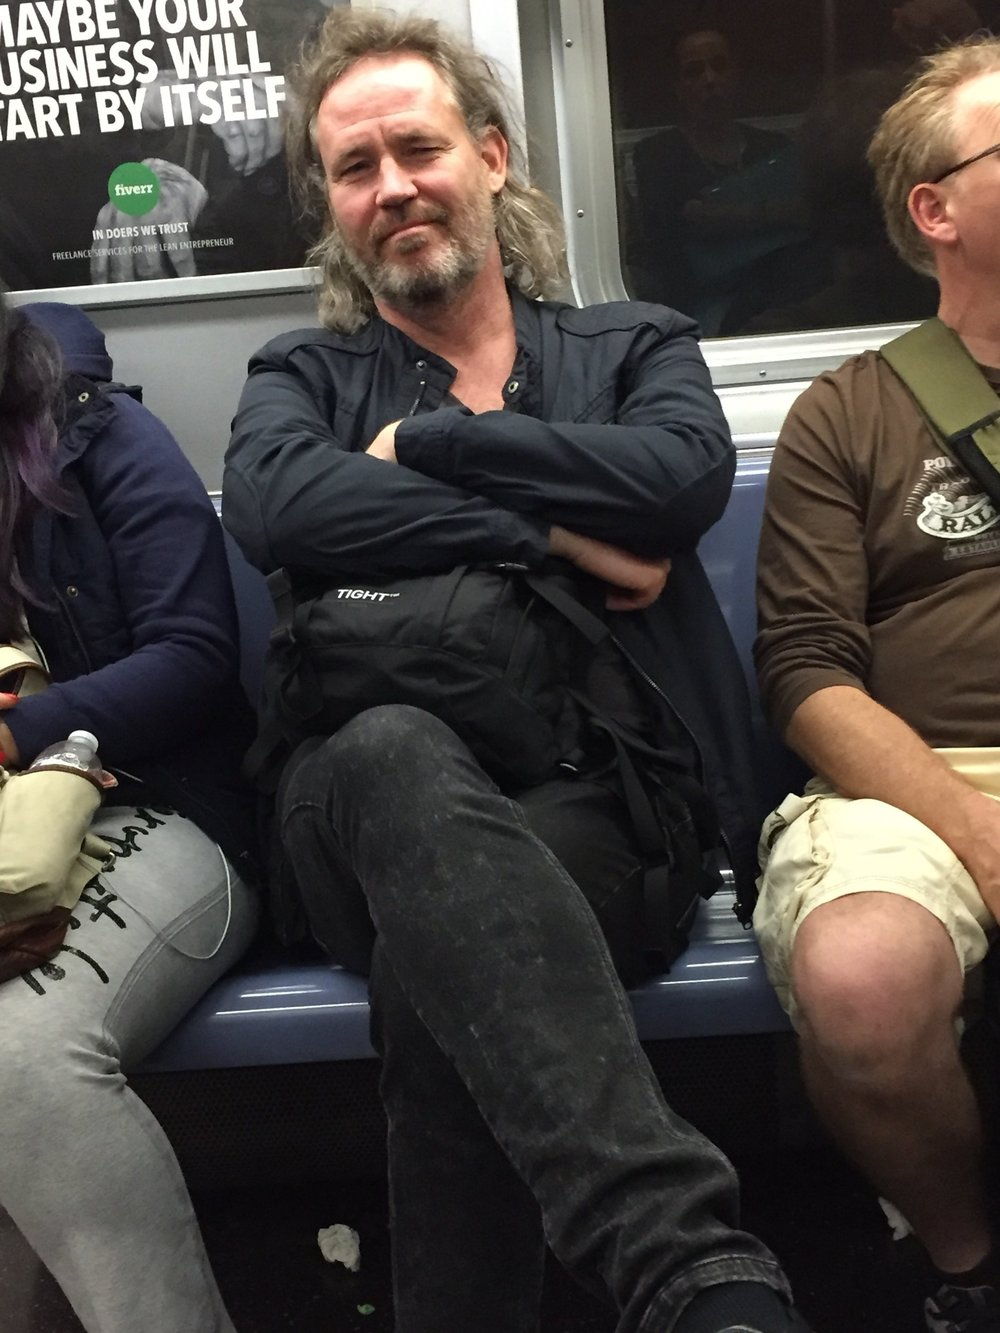 glenn-on-subway-1-e1494282815801.jpg